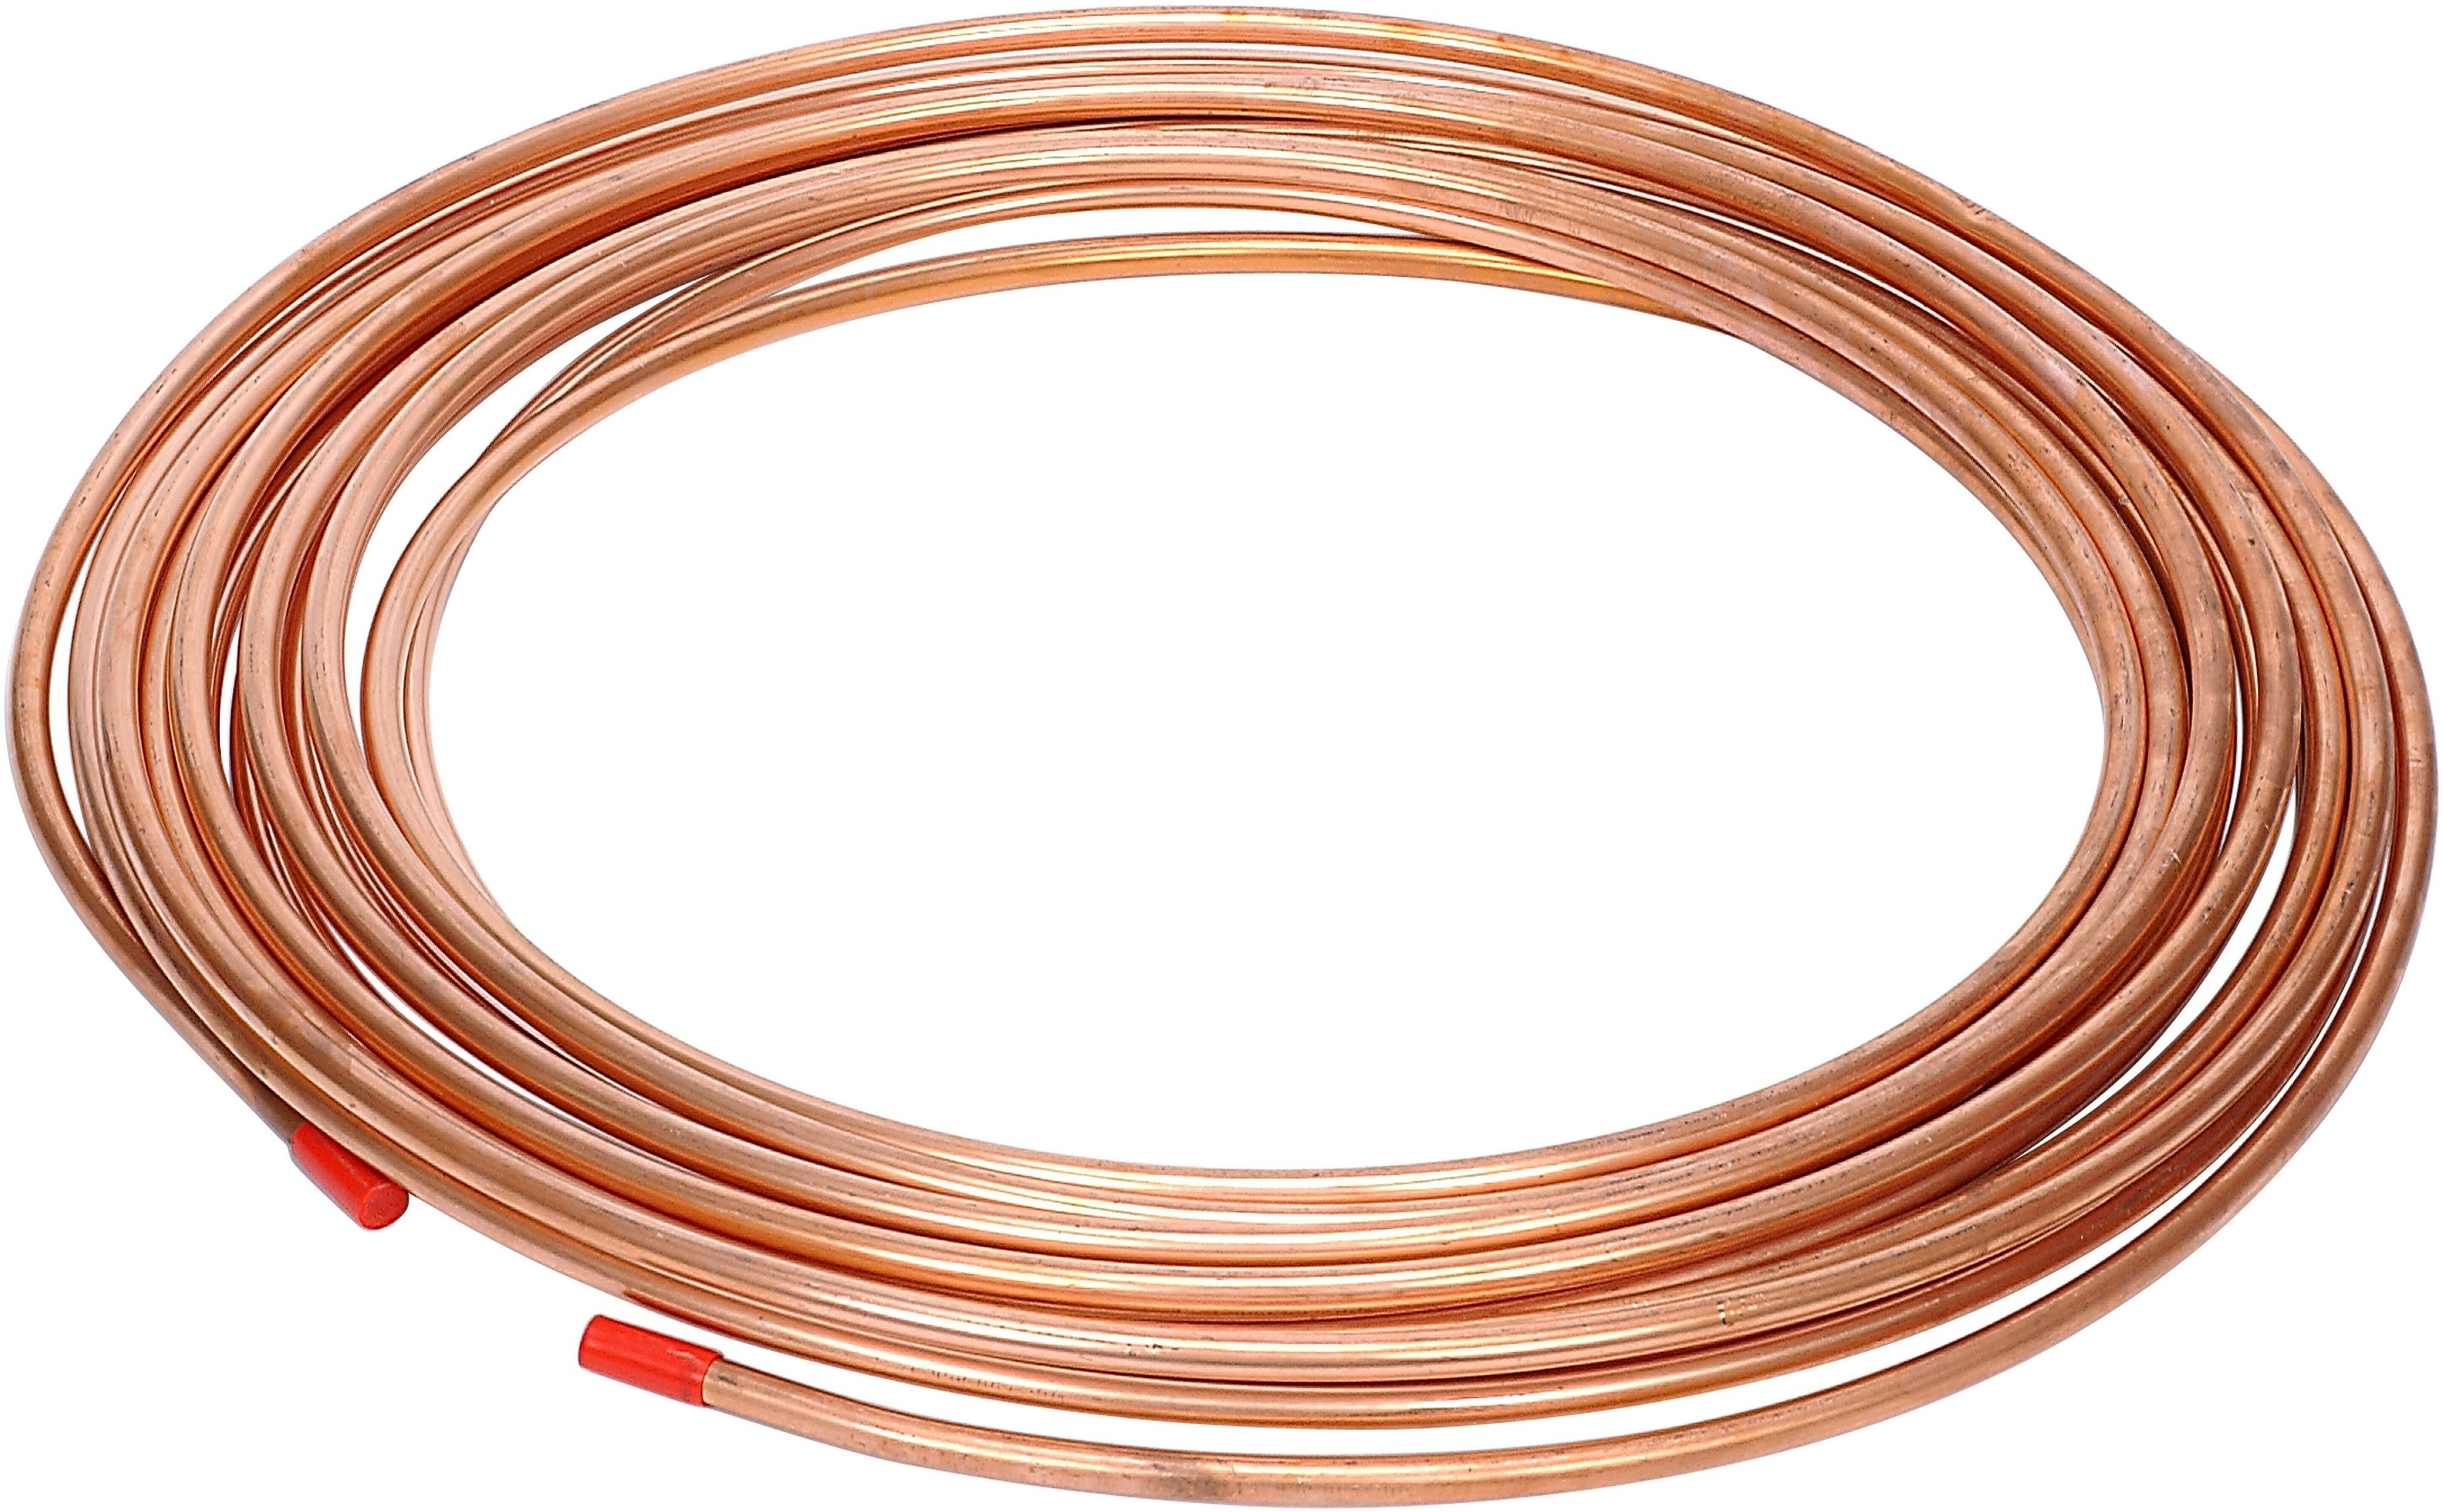 How to calculate copper wire losses ehow keyboard keysfo Image collections